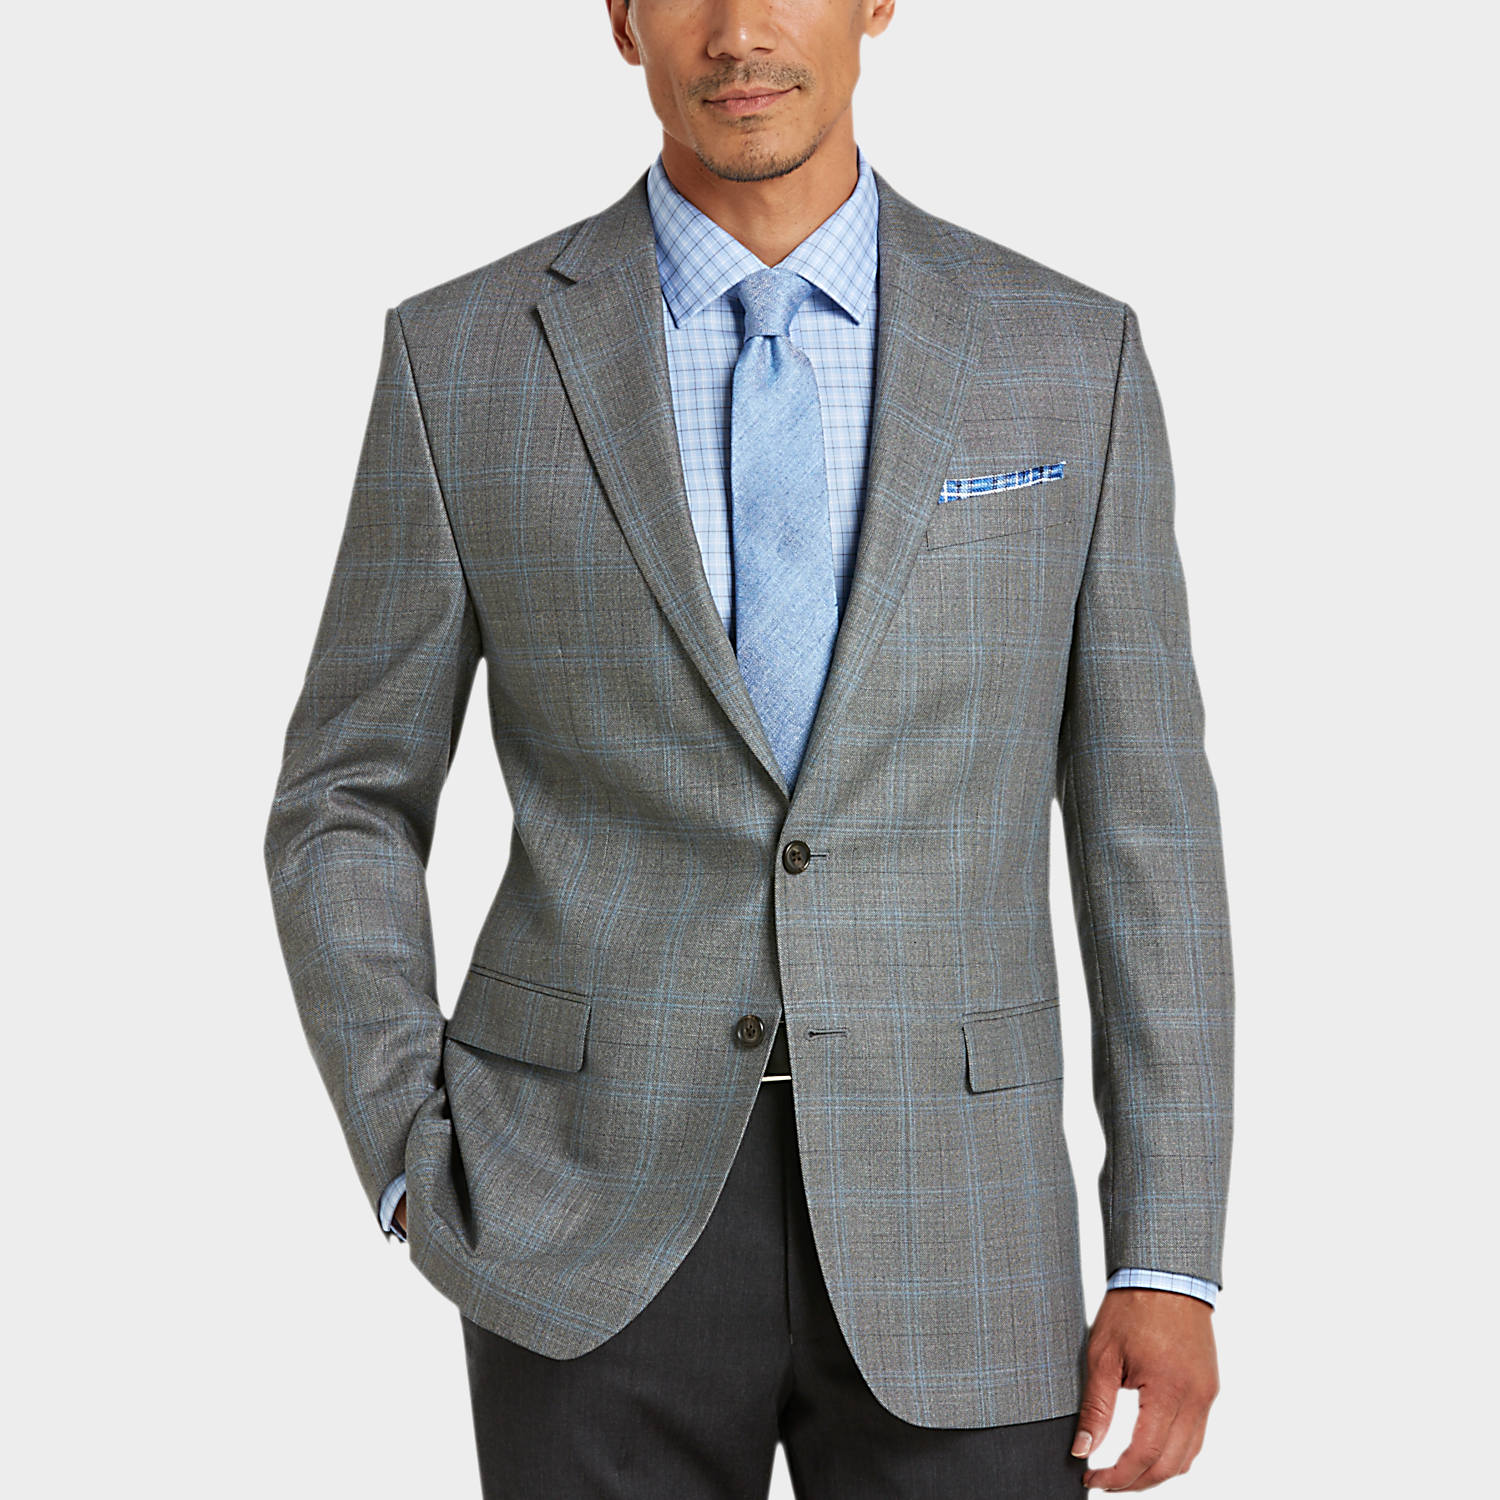 Gray Plaid Classic Fit Sport Coat - Men's Sport Coats - Lauren by ...